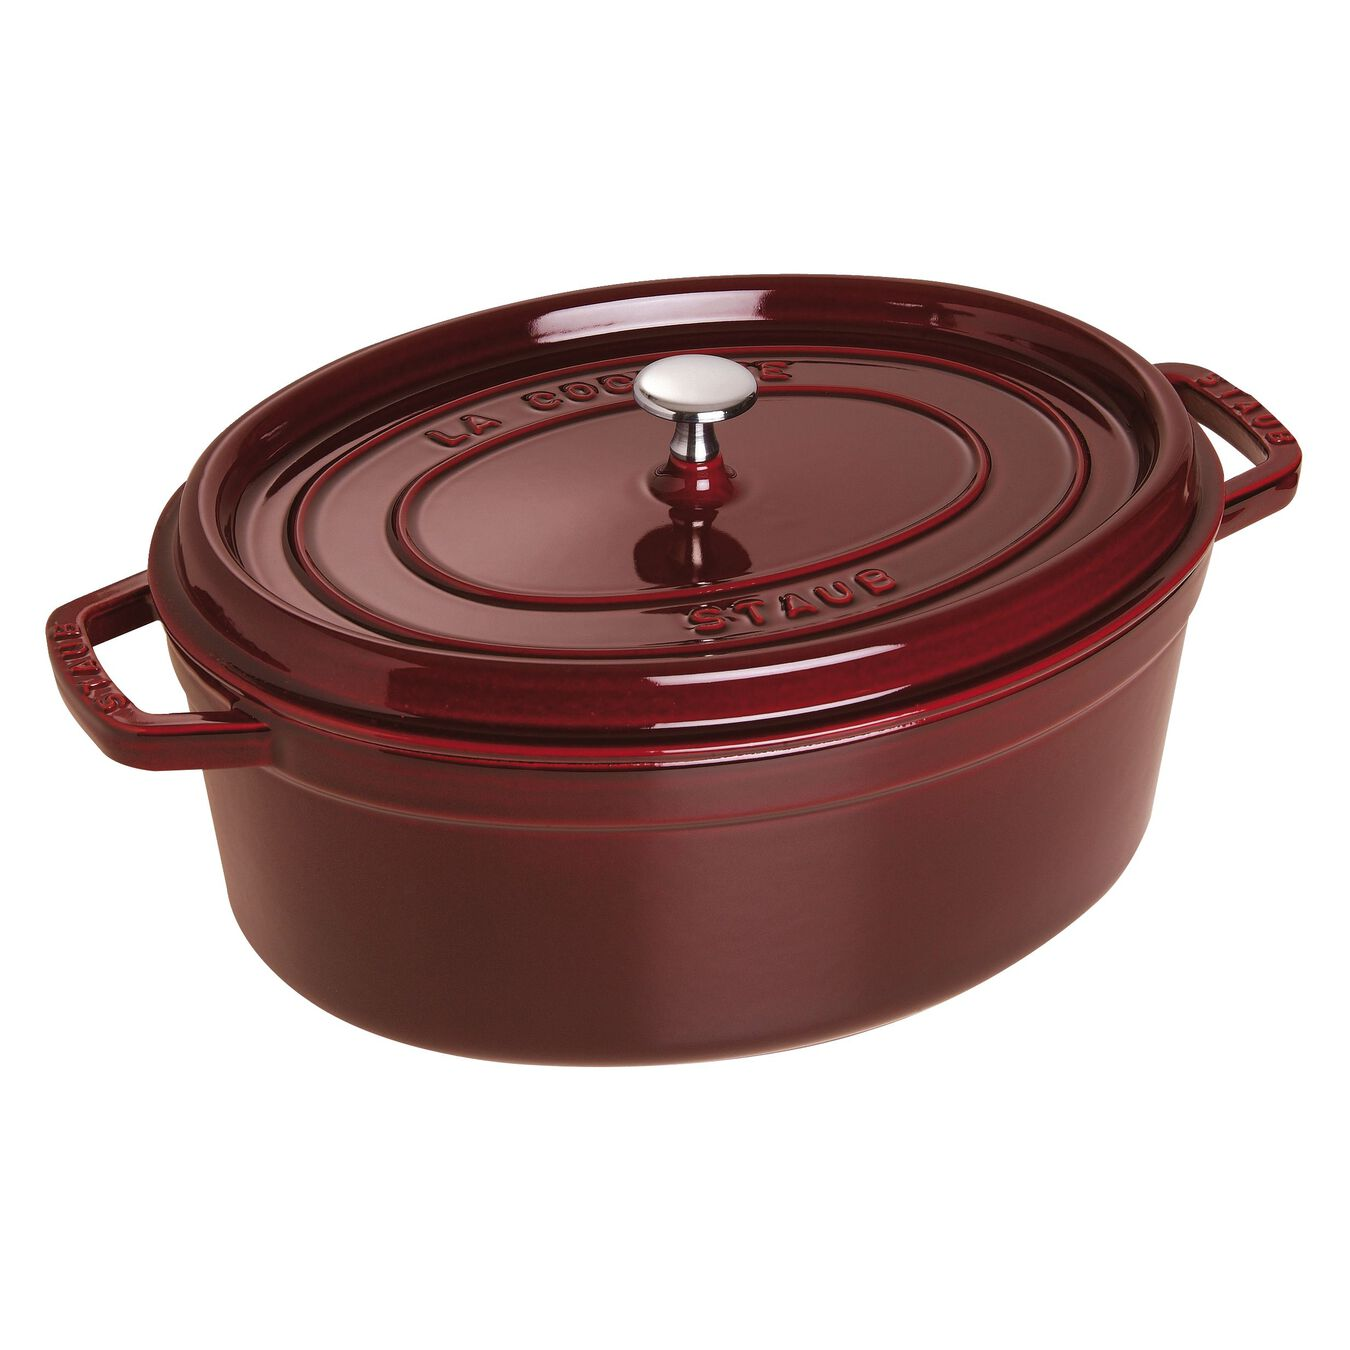 3.25 l Cast iron oval Cocotte, Grenadine-Red,,large 1